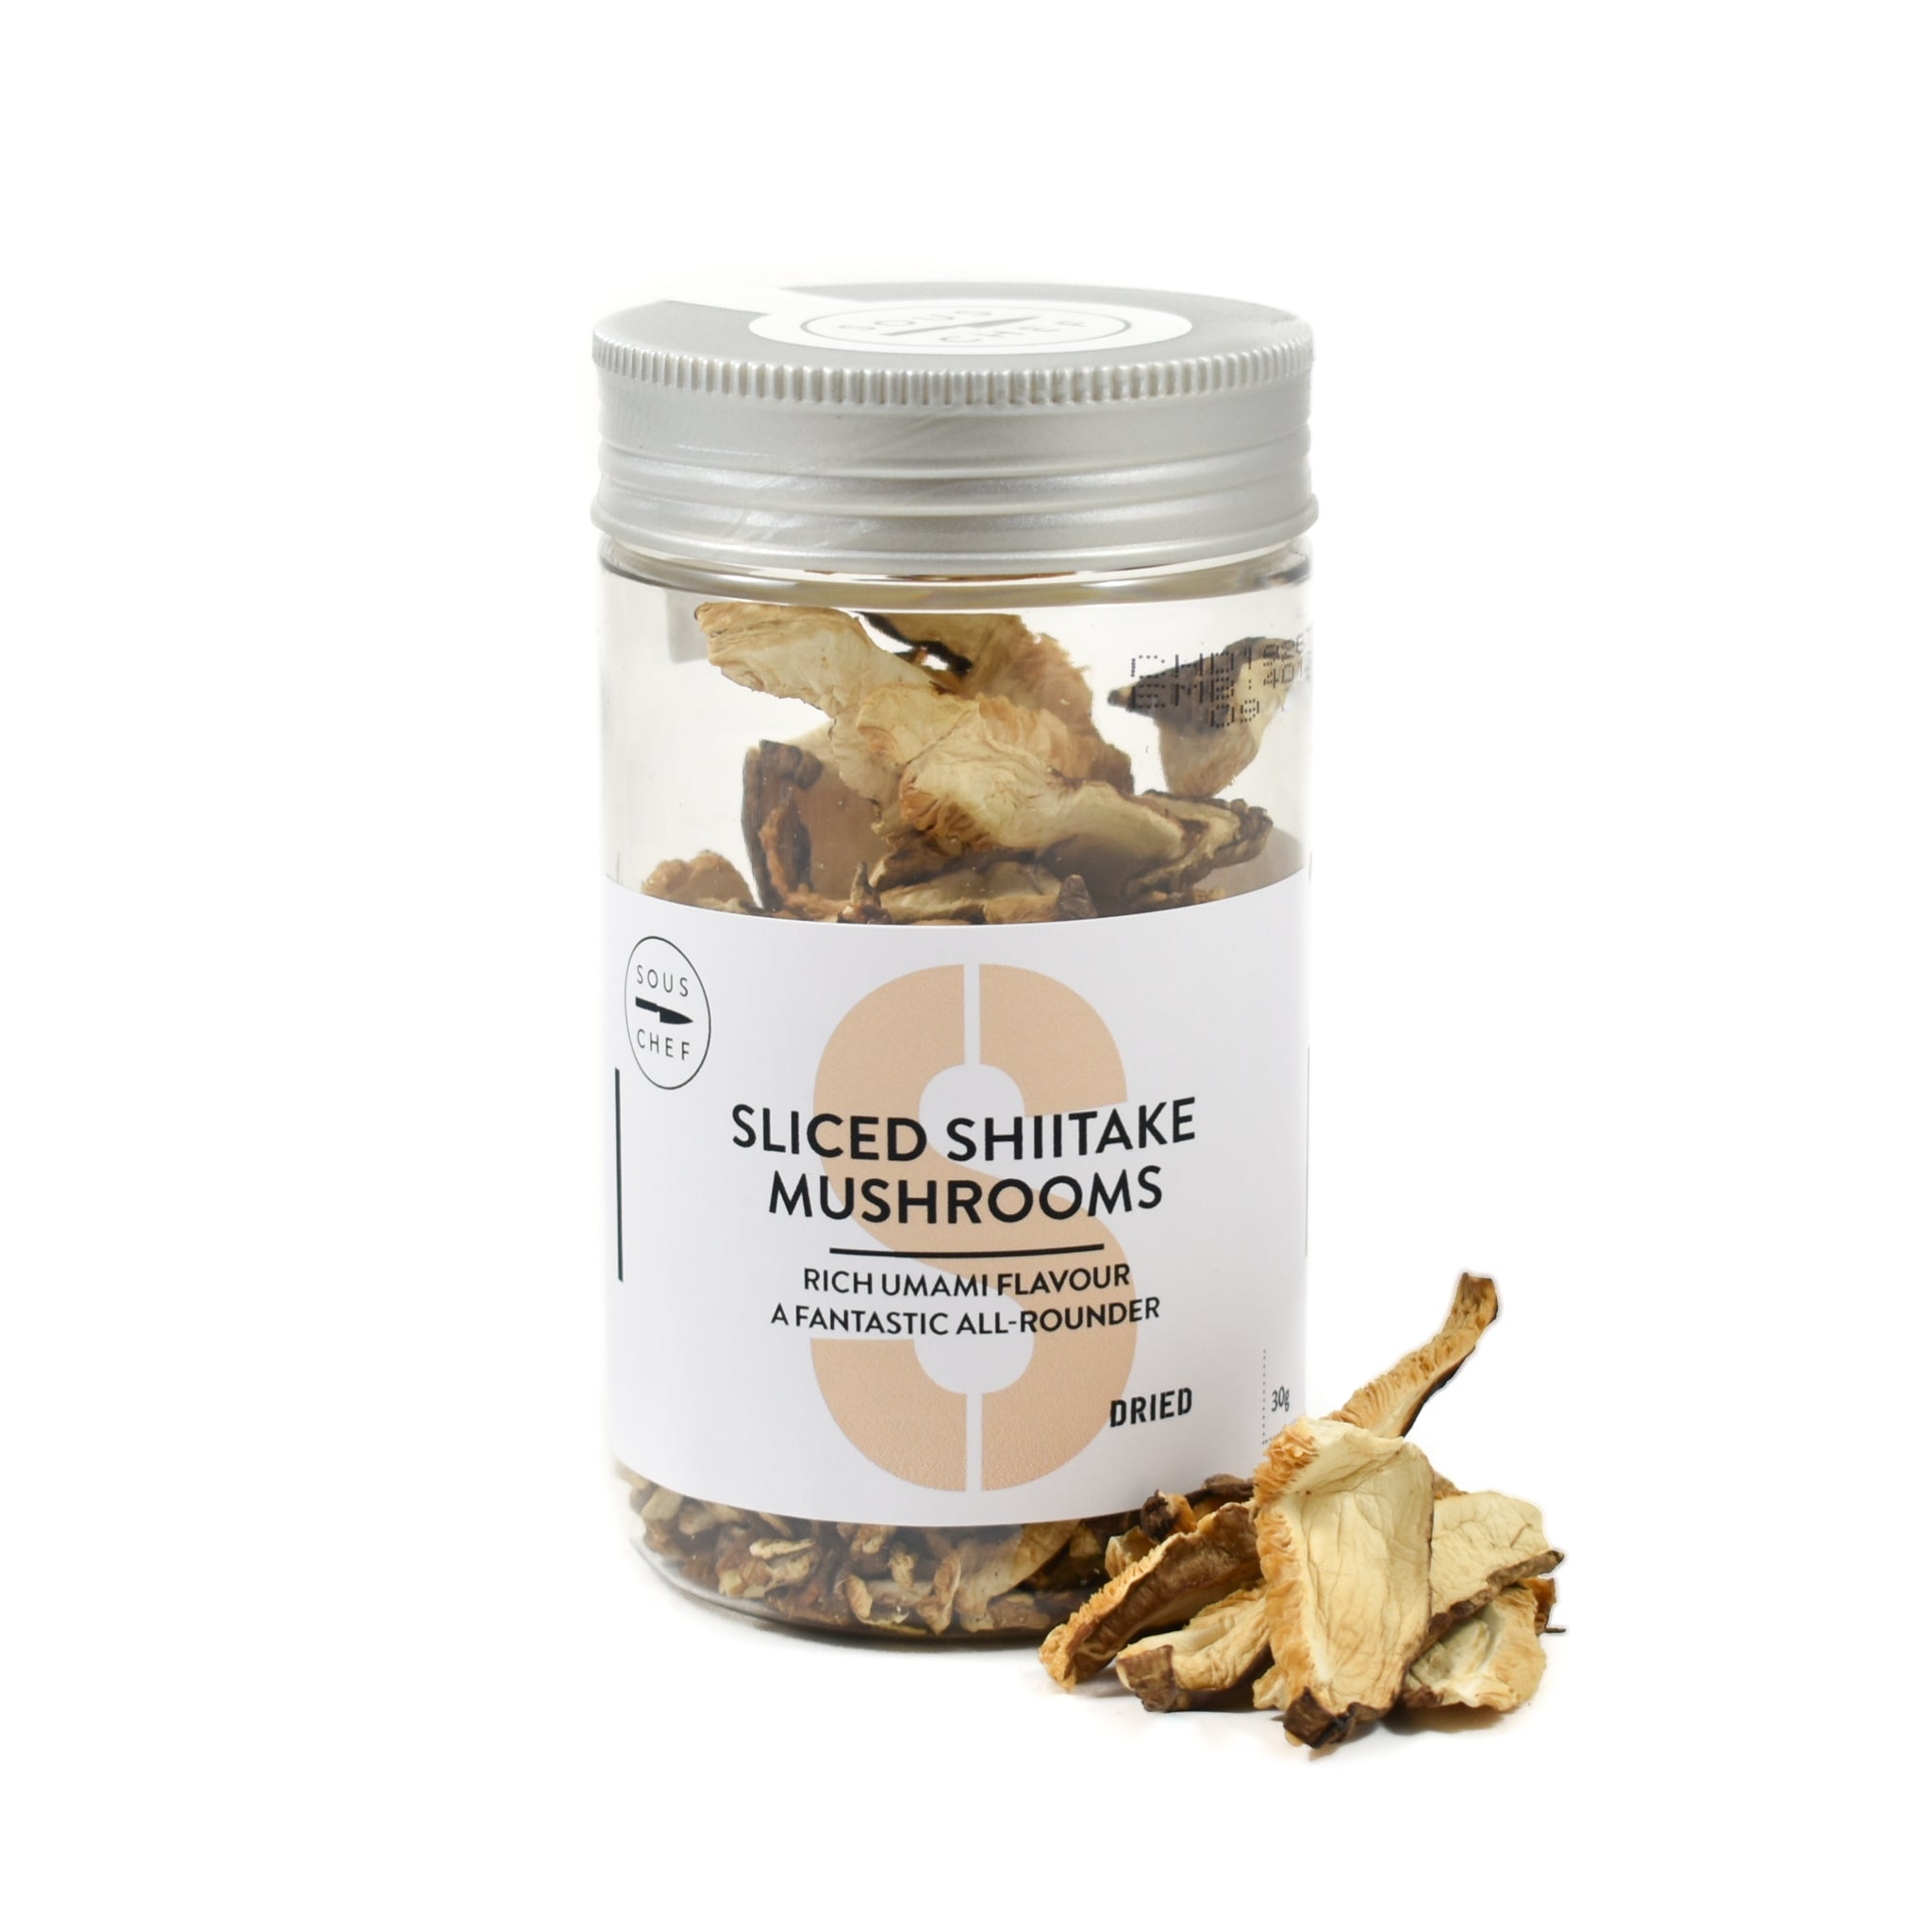 Sous Chef Dried Sliced Shiitake Mushrooms 30g